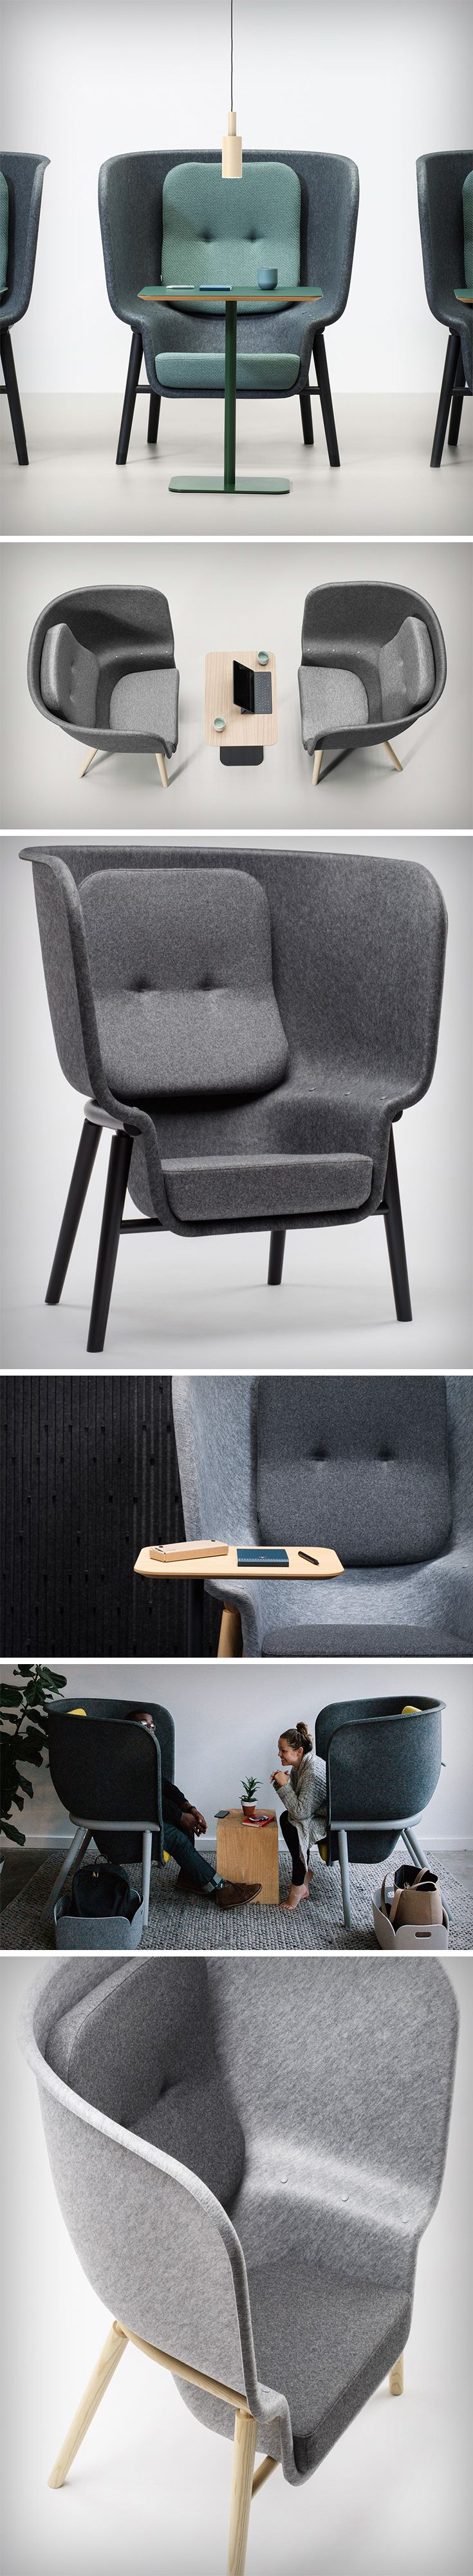 best furniture images on pinterest chairs products and